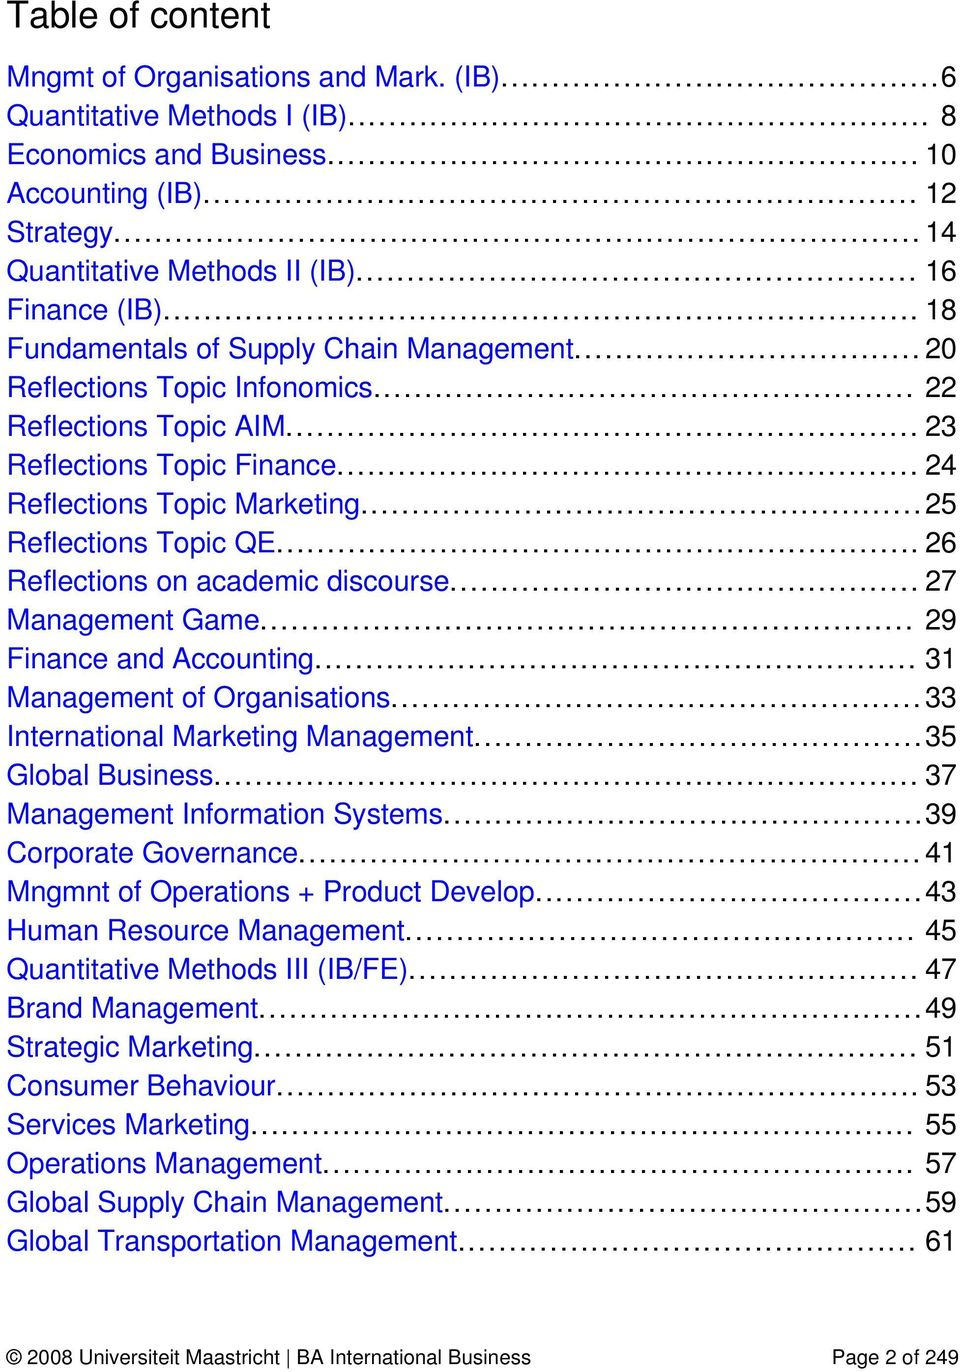 .. 25 Reflections Topic QE... 26 Reflections on academic discourse... 27 Management Game... 29 Finance and Accounting... 31 Management of Organisations... 33 International Marketing Management.